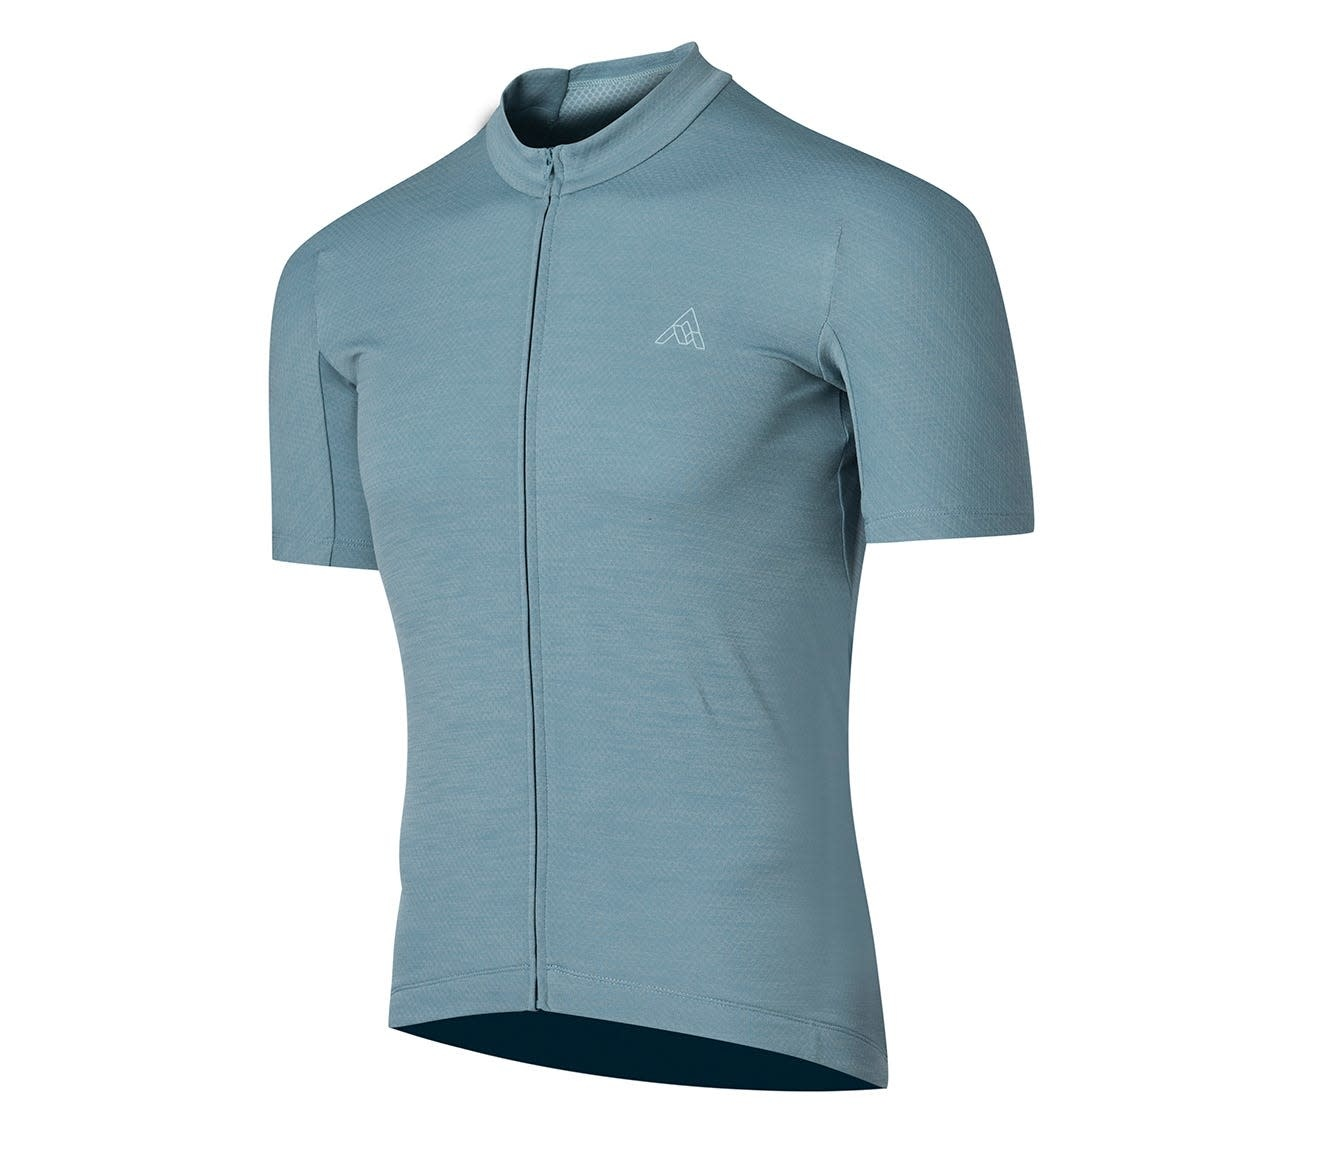 7 Mesh, Men's Horizon Jersey,  Storm Blue (Lg)